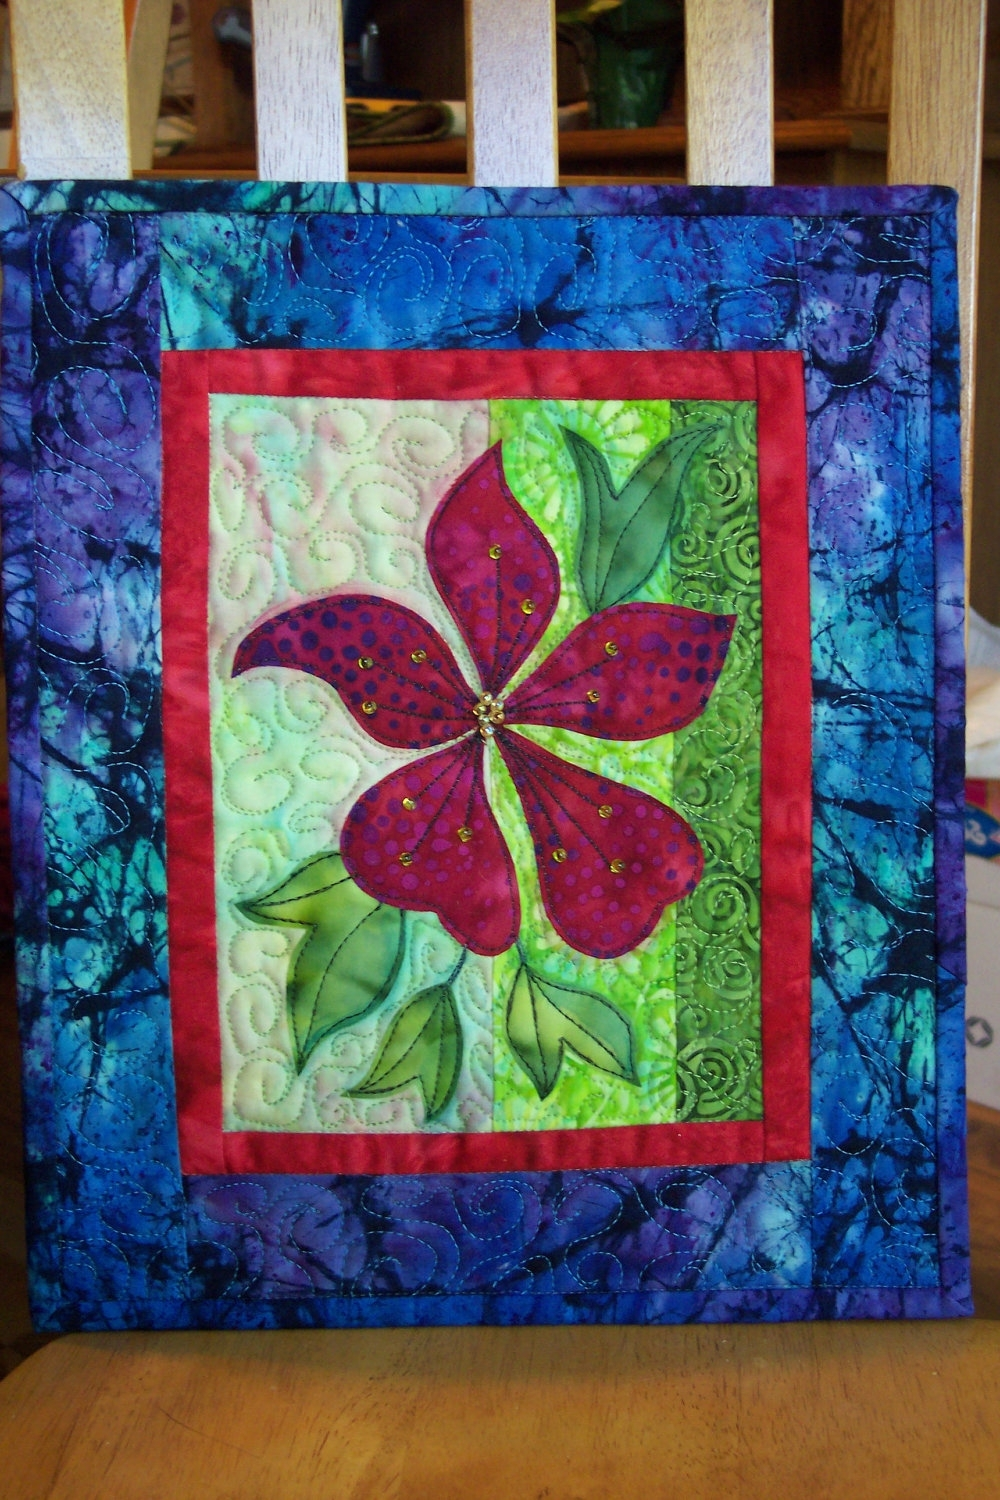 Landscape Quilt, Batik Fabric, Craft Pattern, Mixed Media, Wall With Regard To Current Quilt Fabric Wall Art (Gallery 10 of 15)